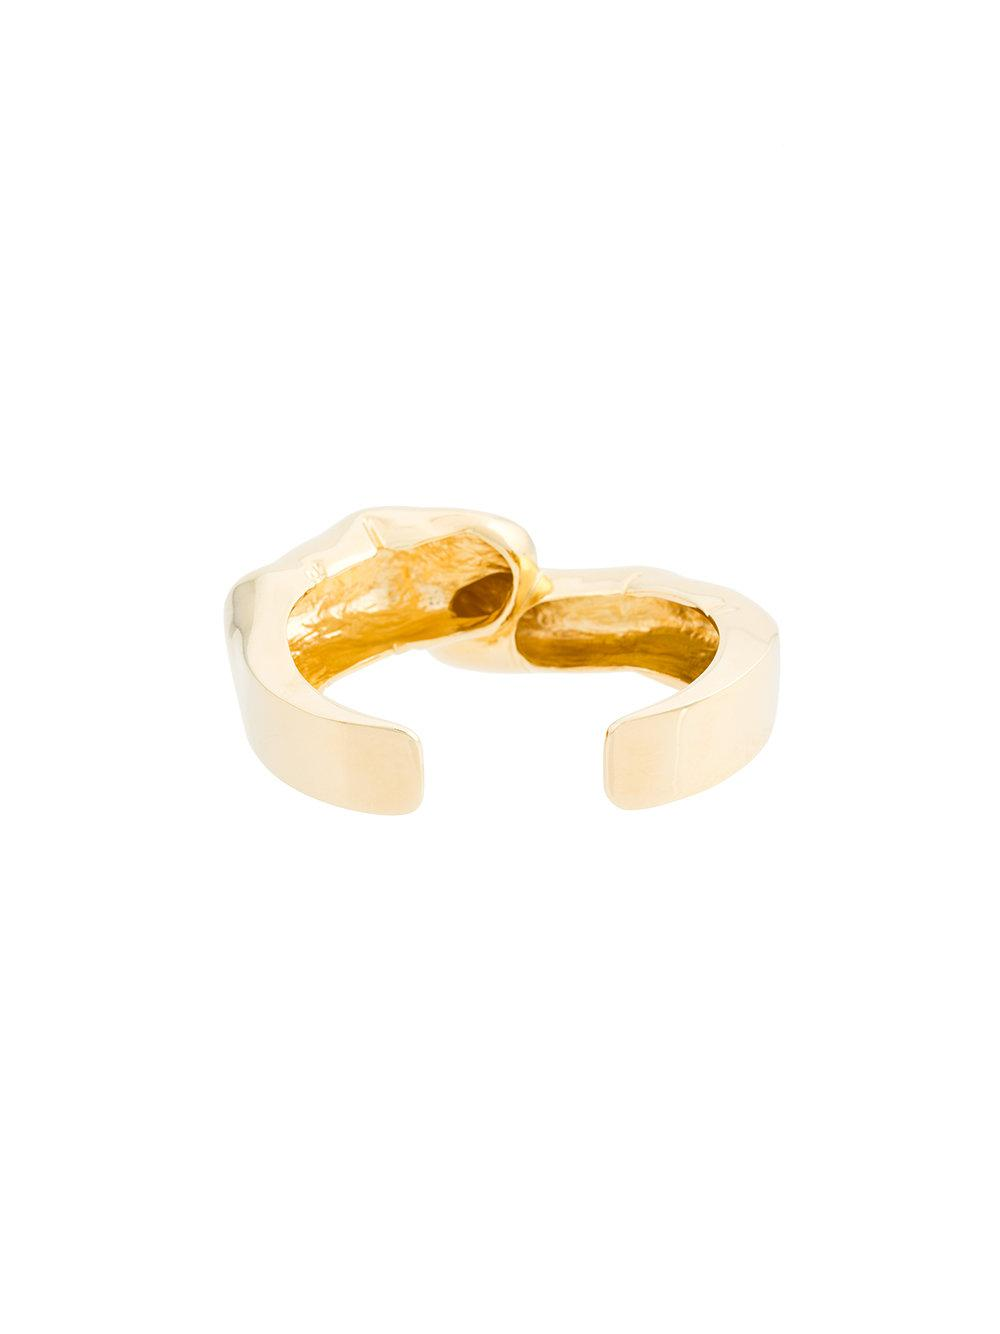 finger shape chunky ring - Metallic Y / Project 1684h1sS